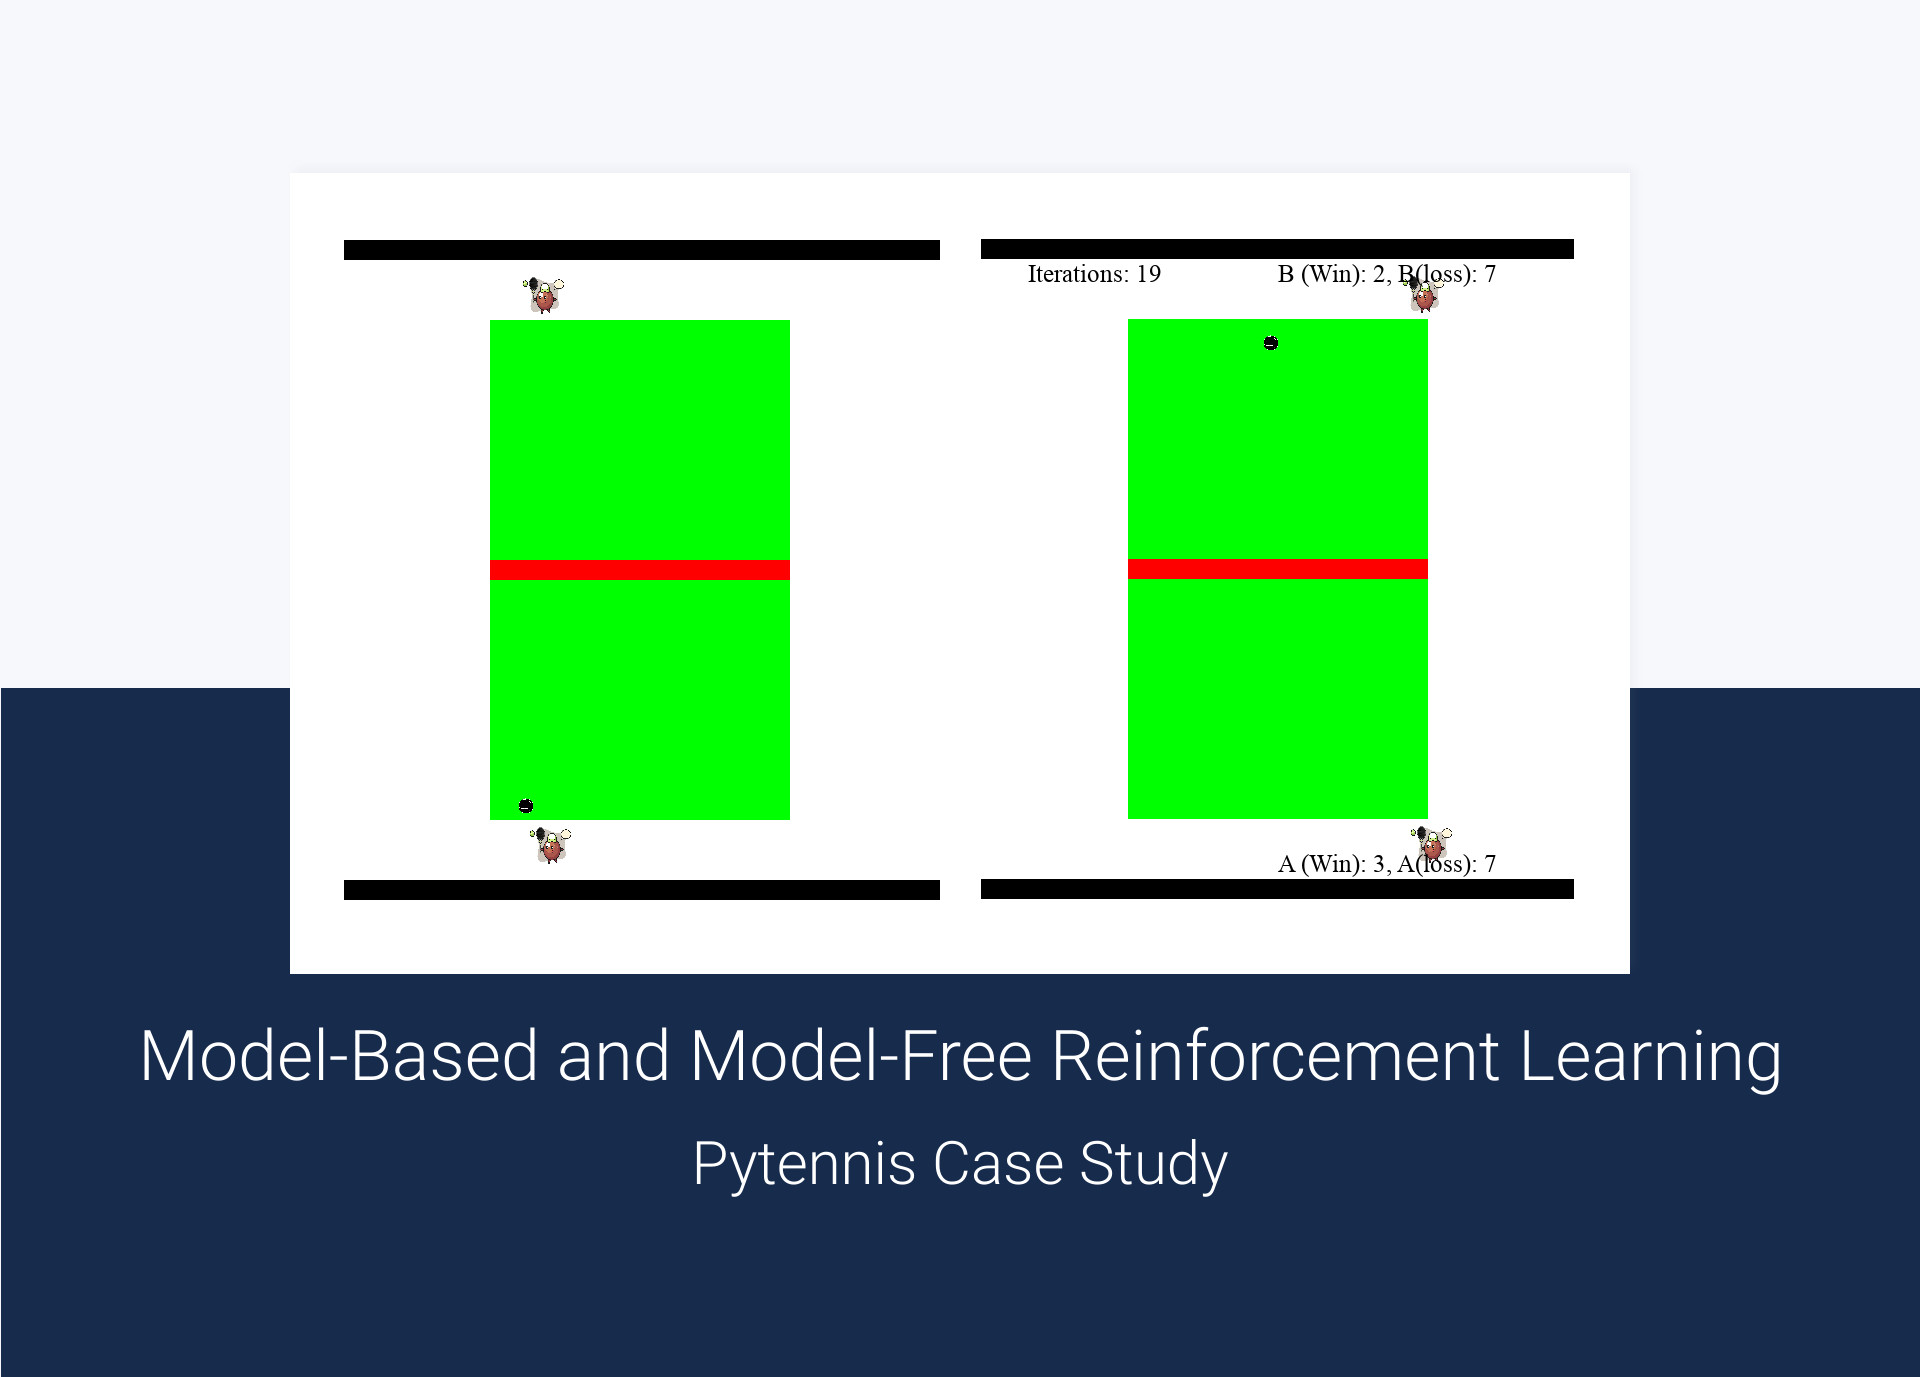 Model-Based and Model-Free Reinforcement Learning – Pytennis Case Study